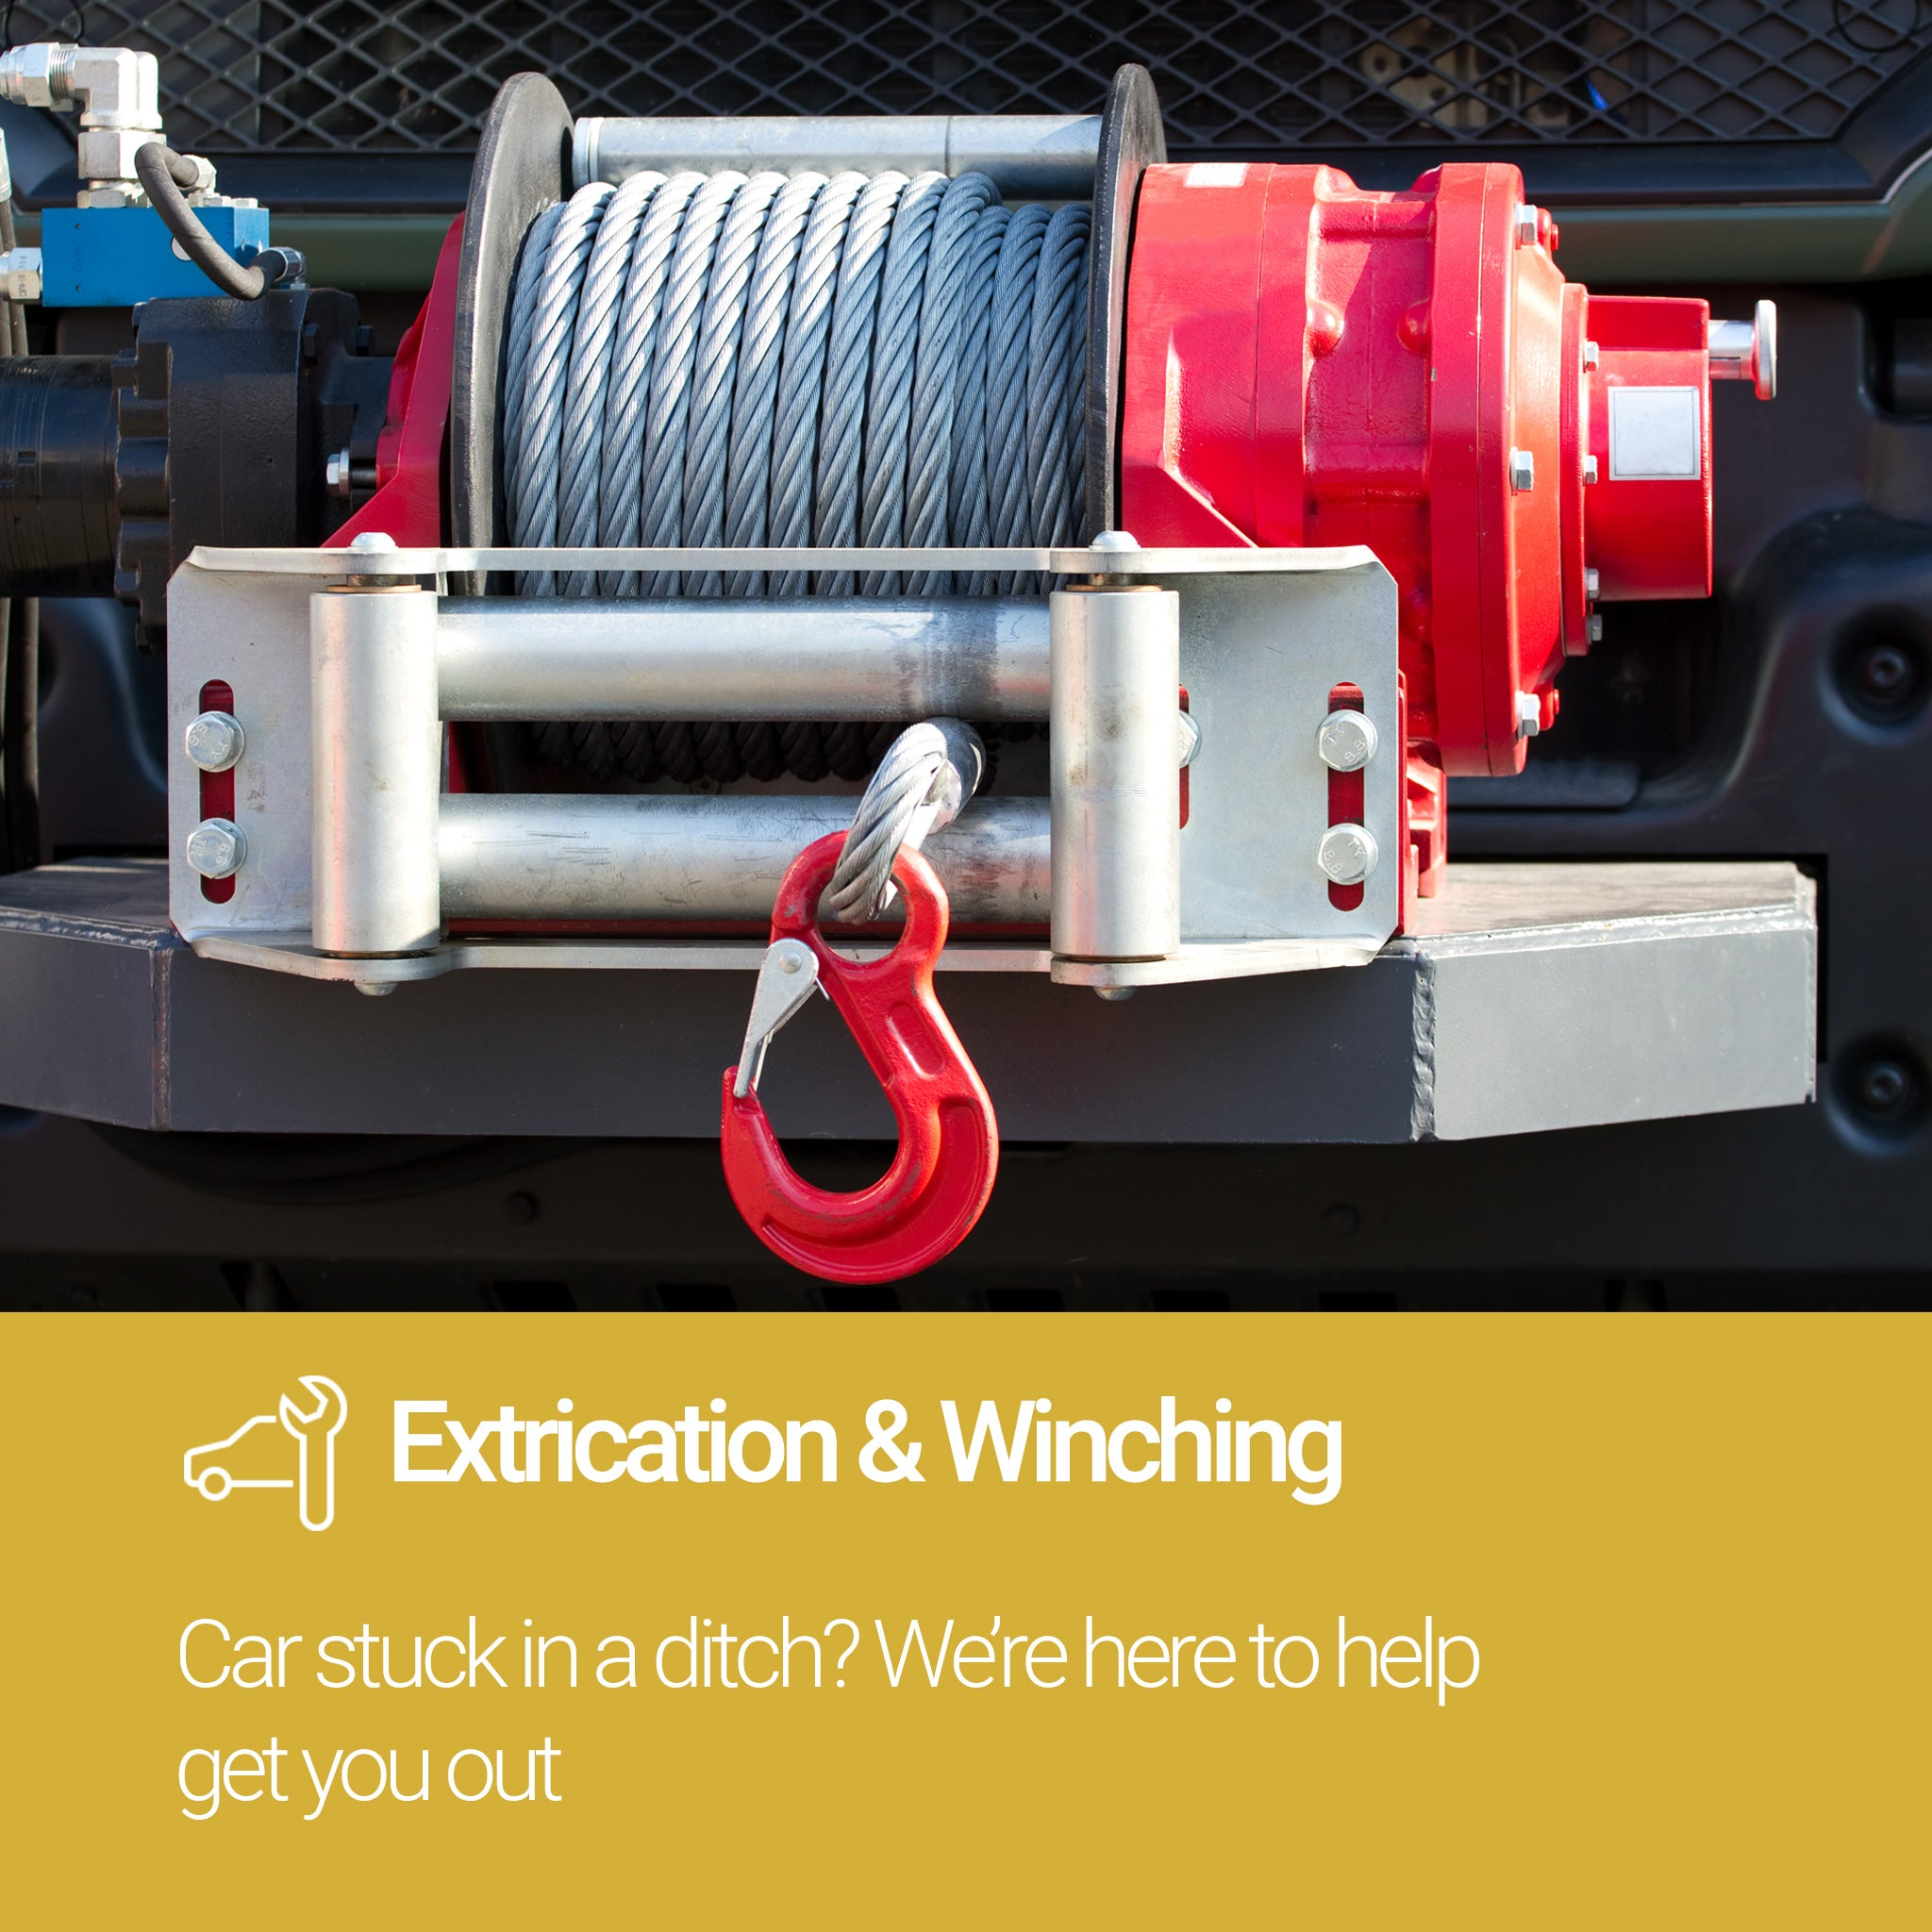 Roadside Assistance Gold Plan Extrication and Winching Service